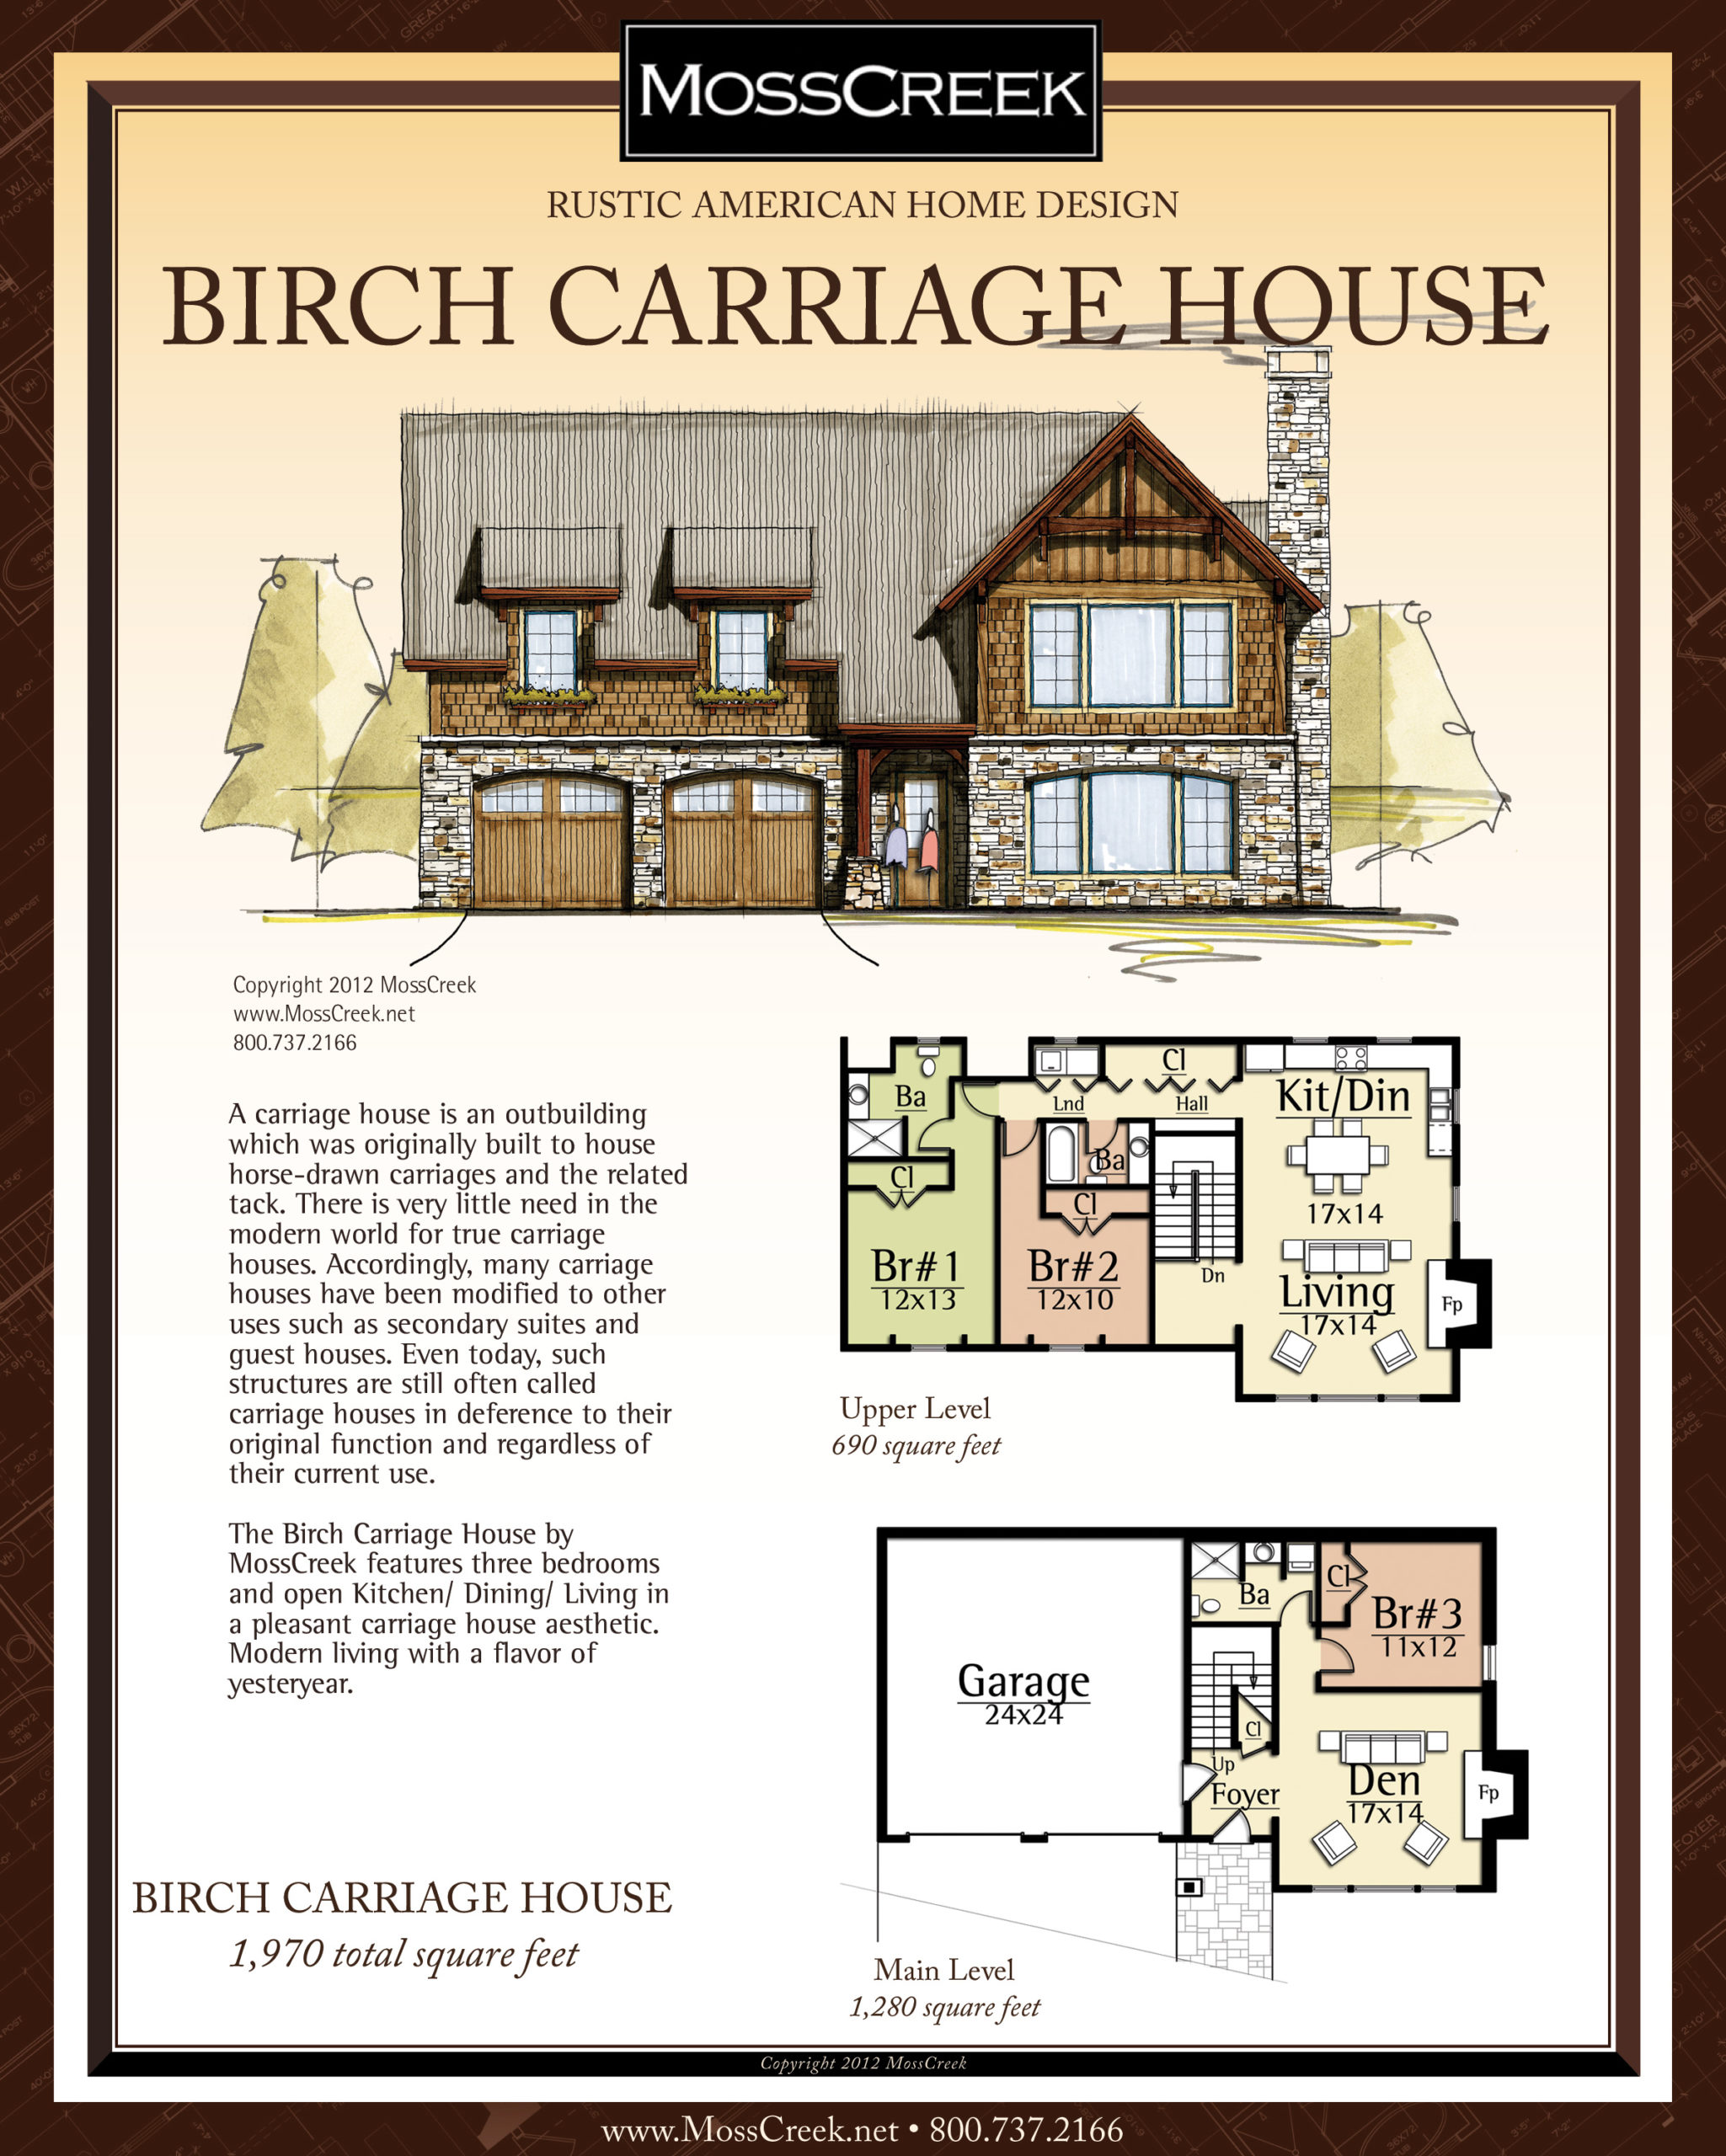 MossCreek Birch Carriage Hosue floor plan